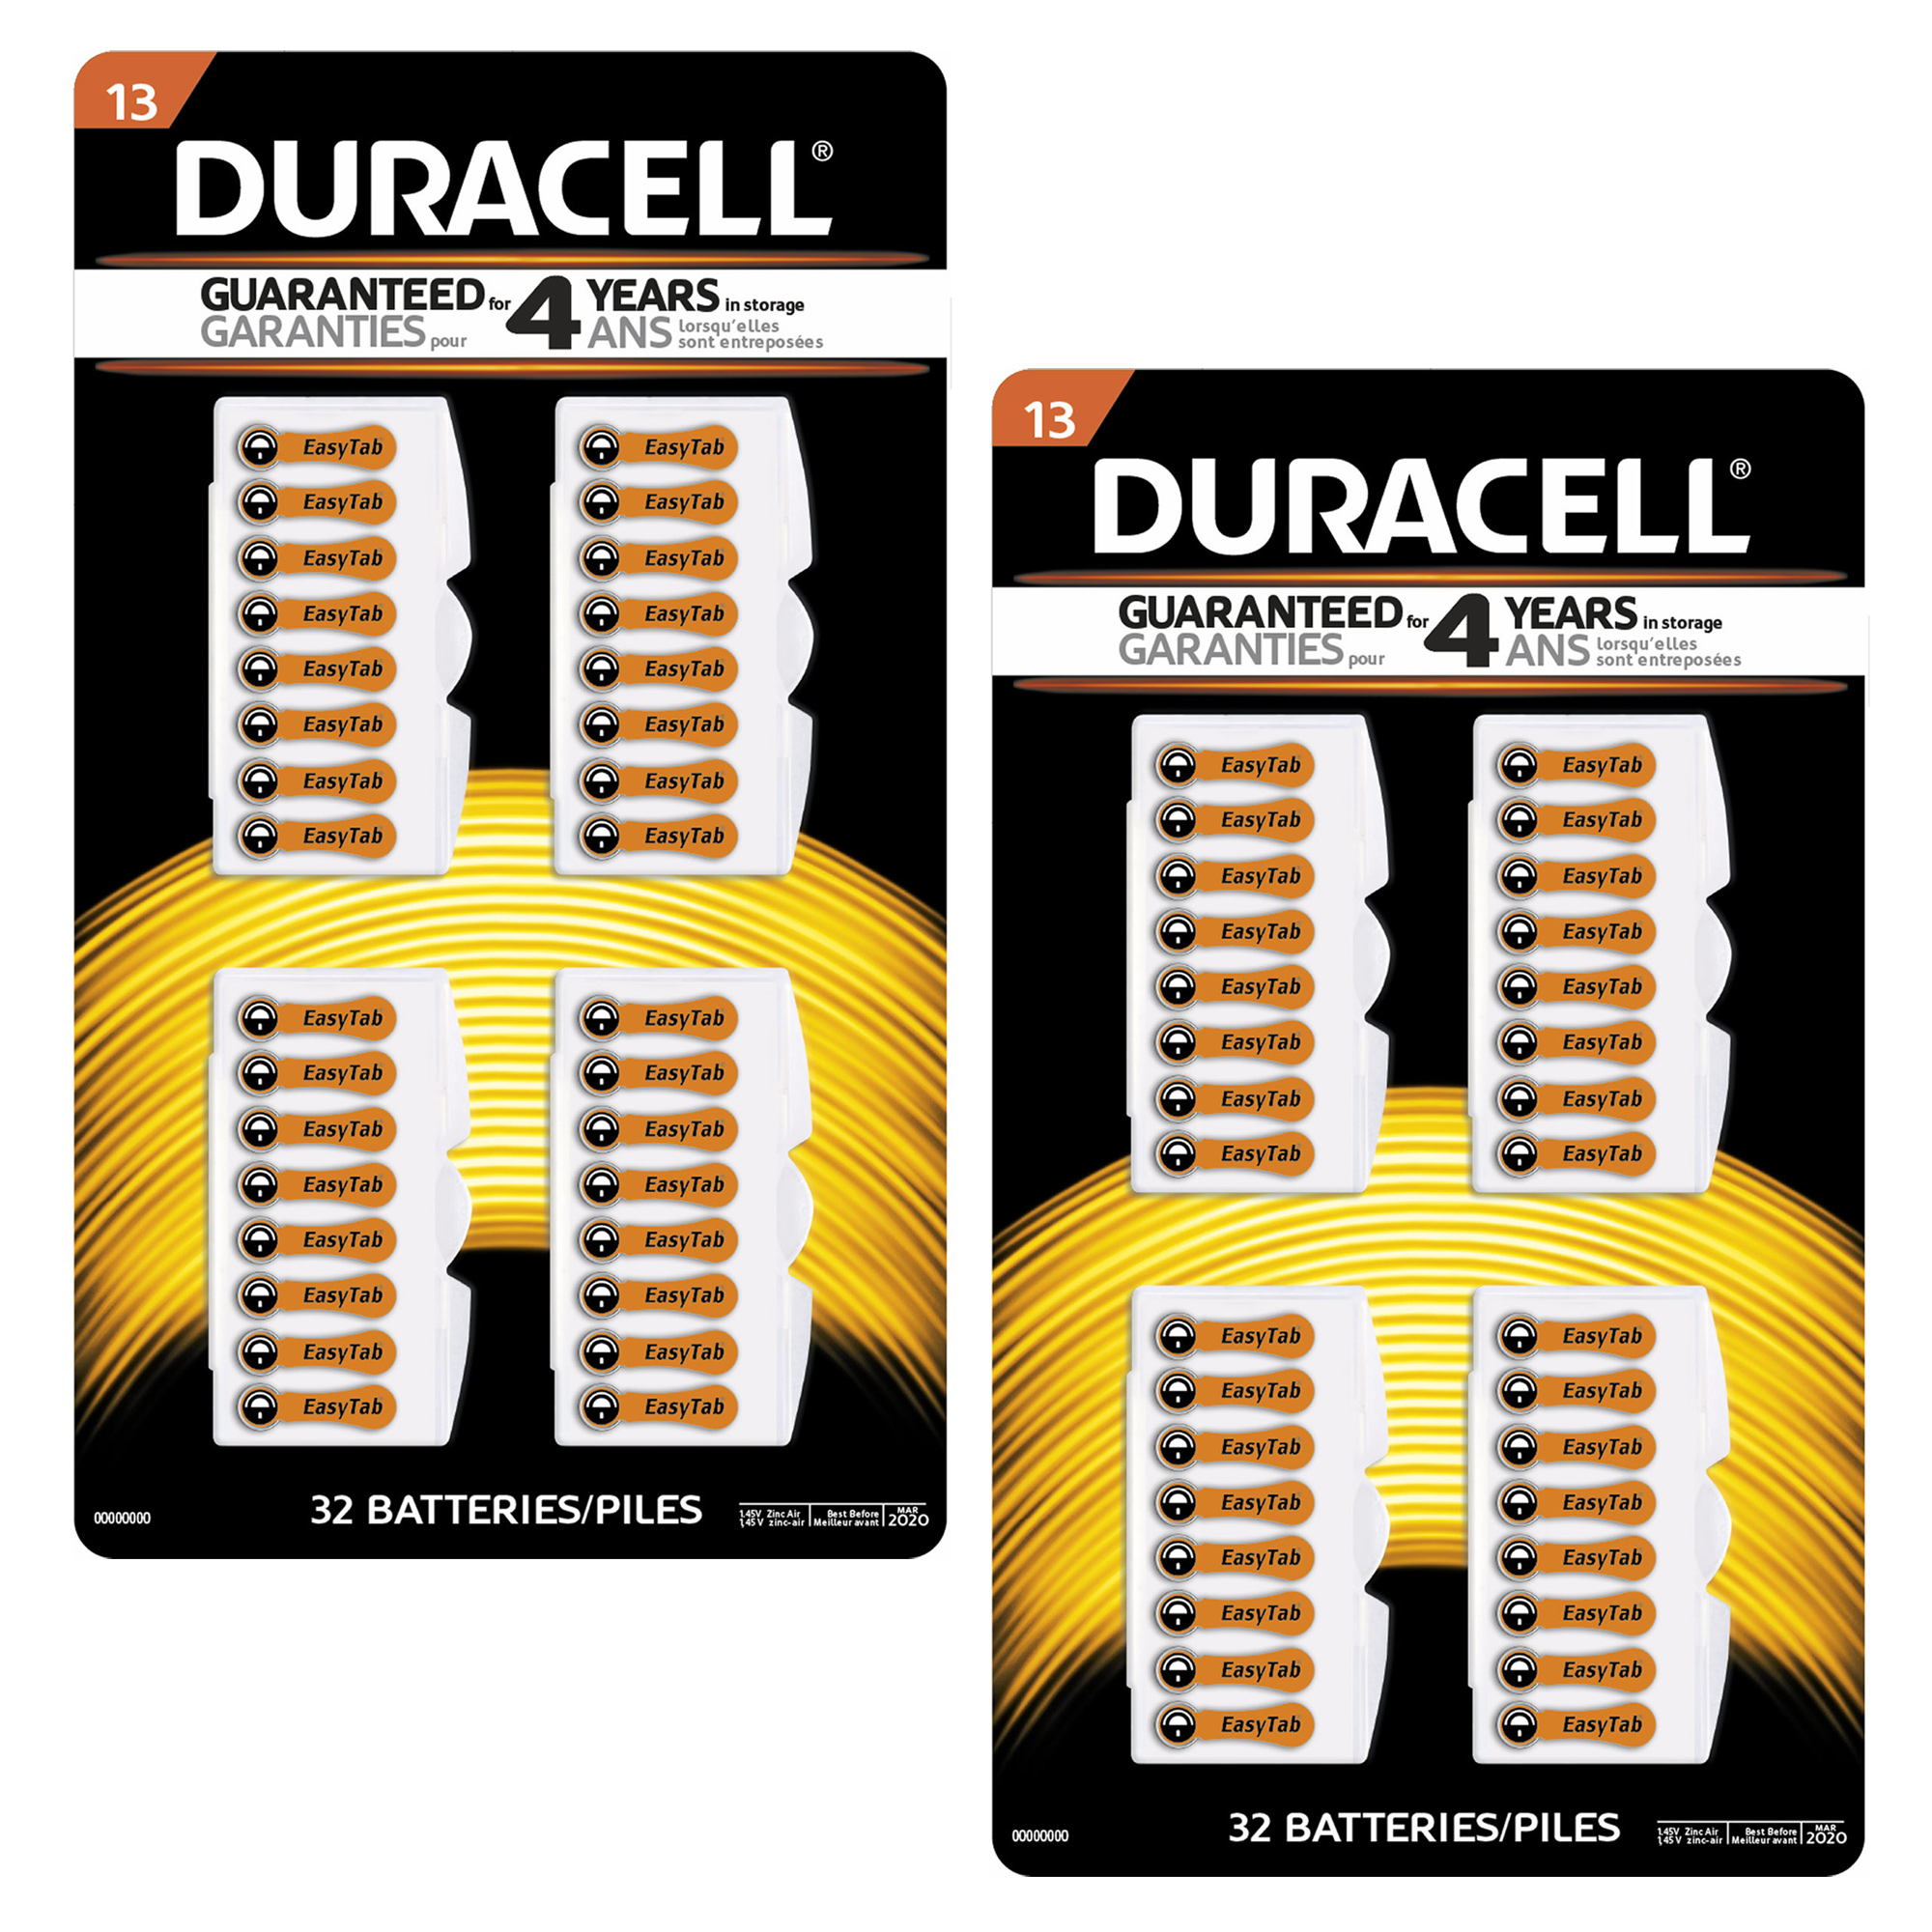 64k duracell size 13 mercury free zinc air hearing aid battery 64k duracell size 13 mercury free zinc air hearing aid battery da13b32zm fandeluxe Choice Image